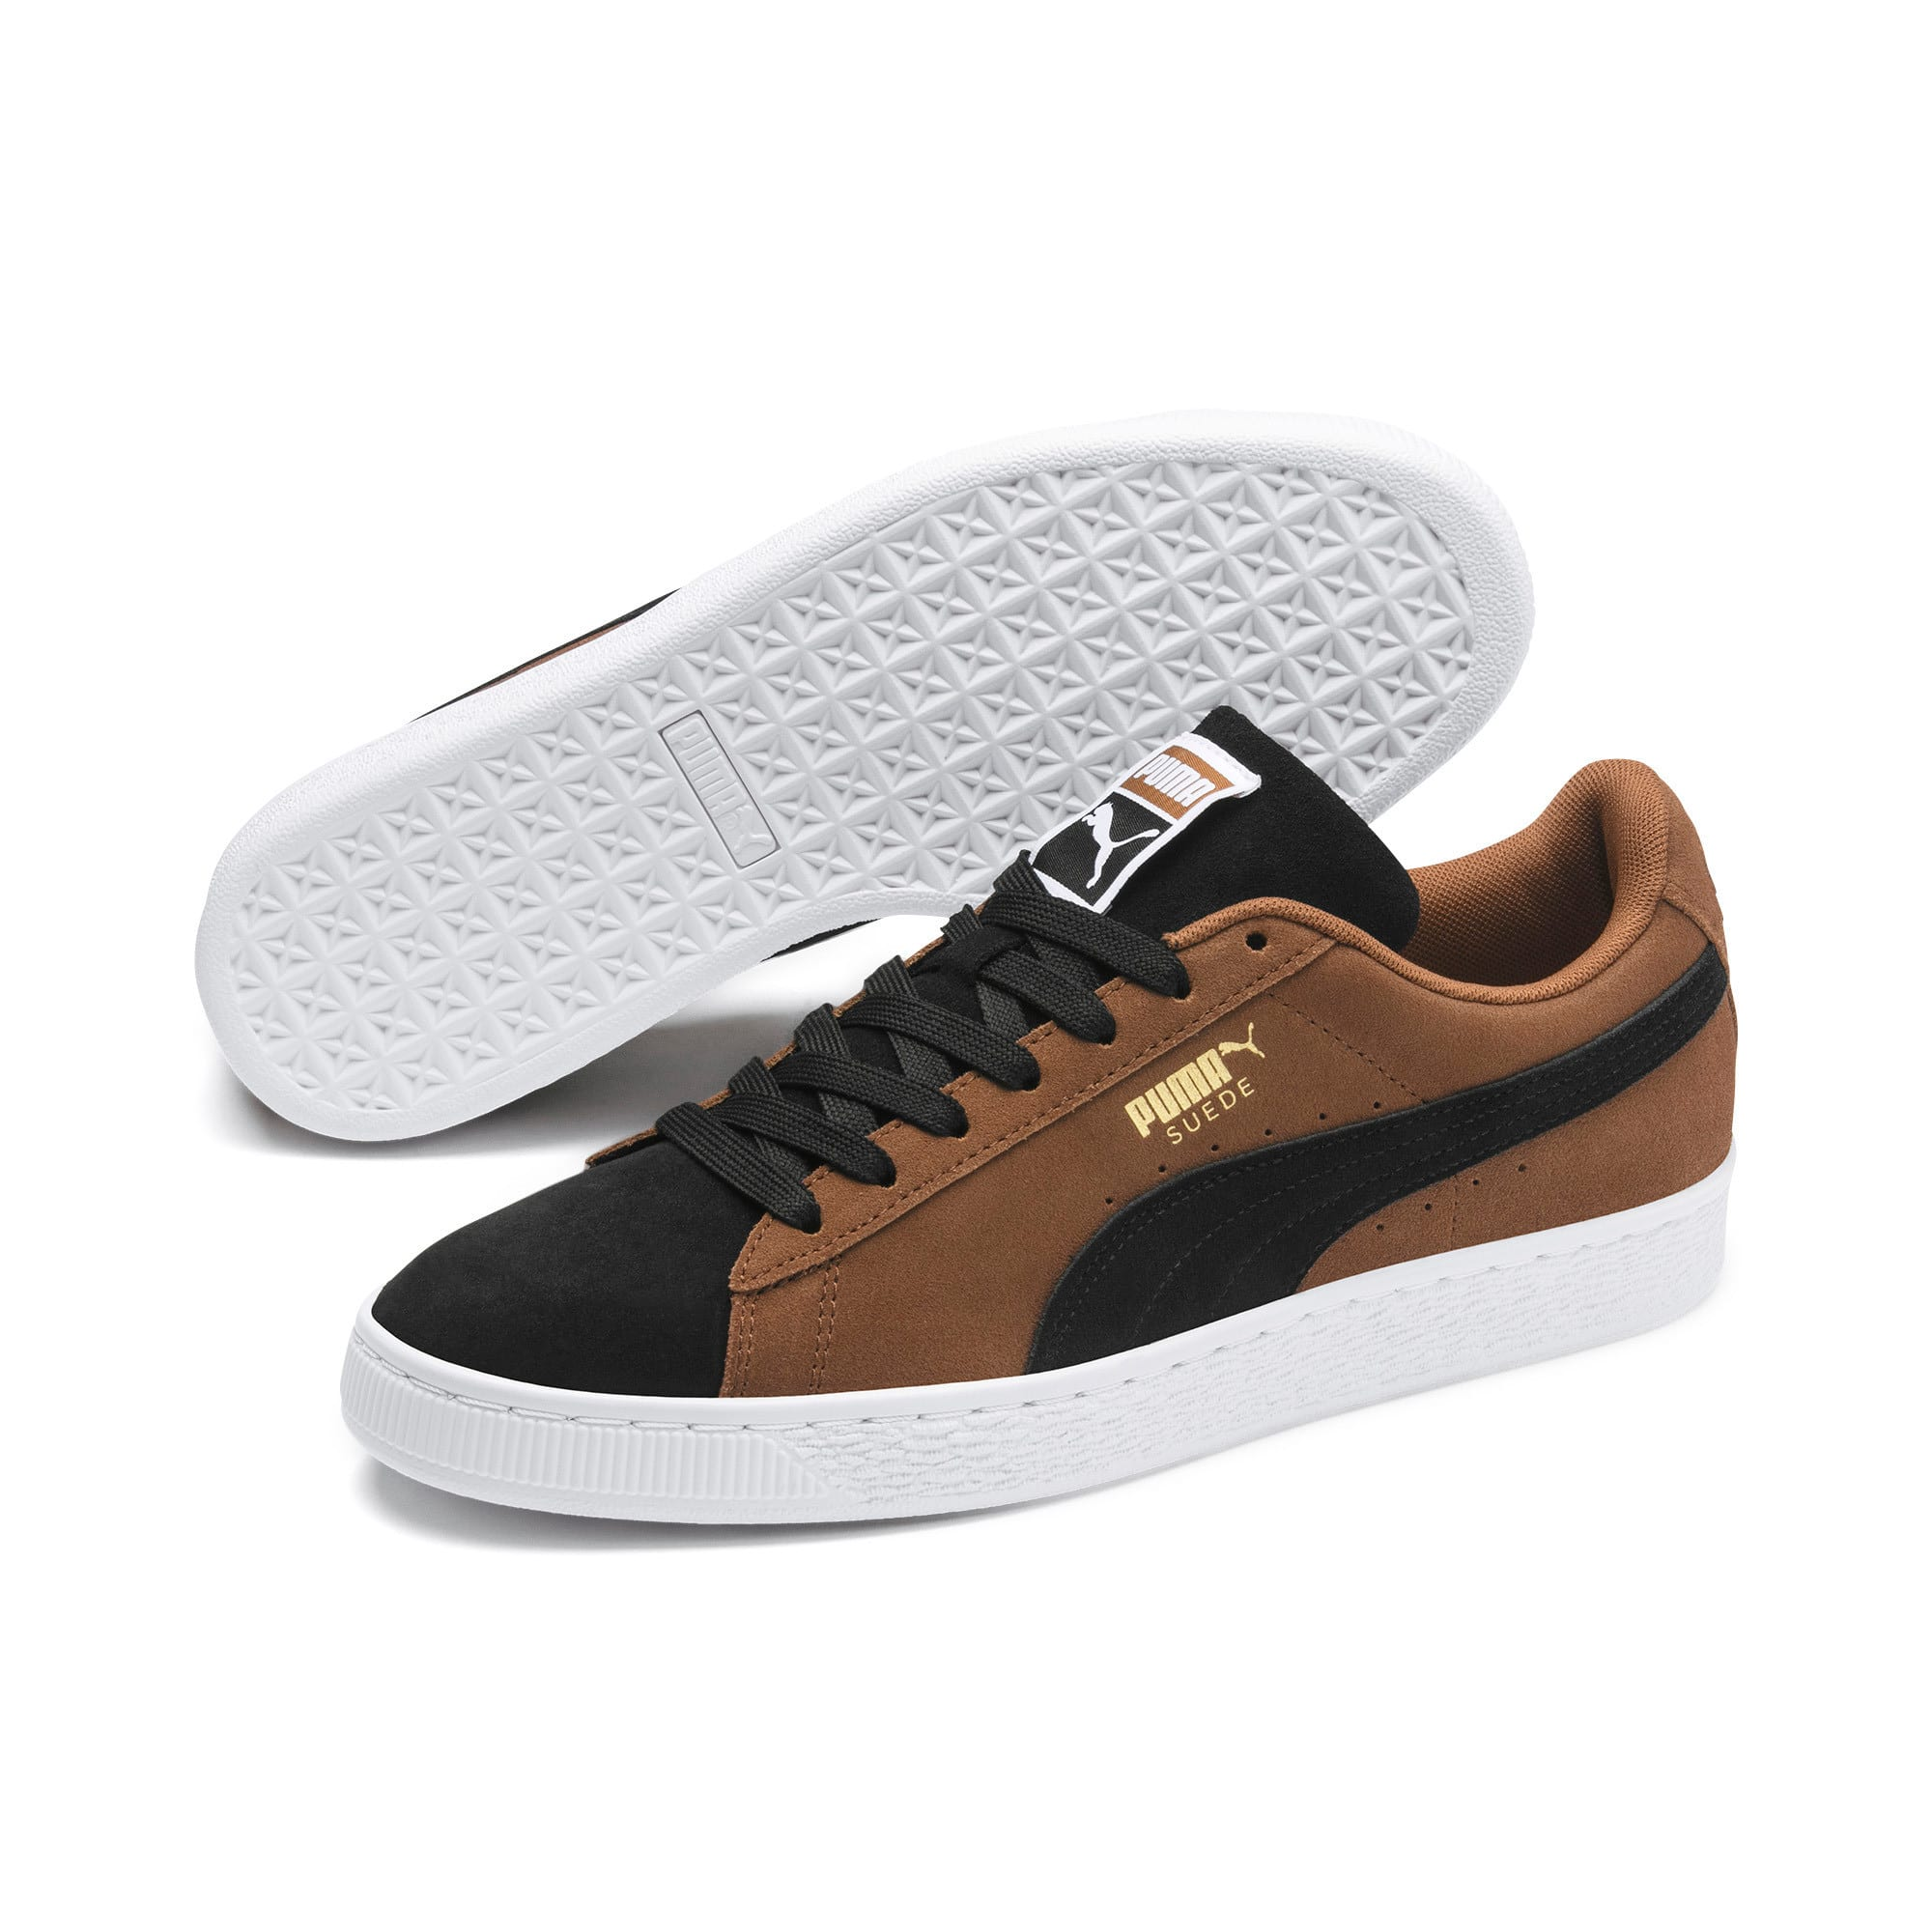 Thumbnail 3 of Suede Classic Sneakers, Dachsund-Puma Black-P Wht, medium